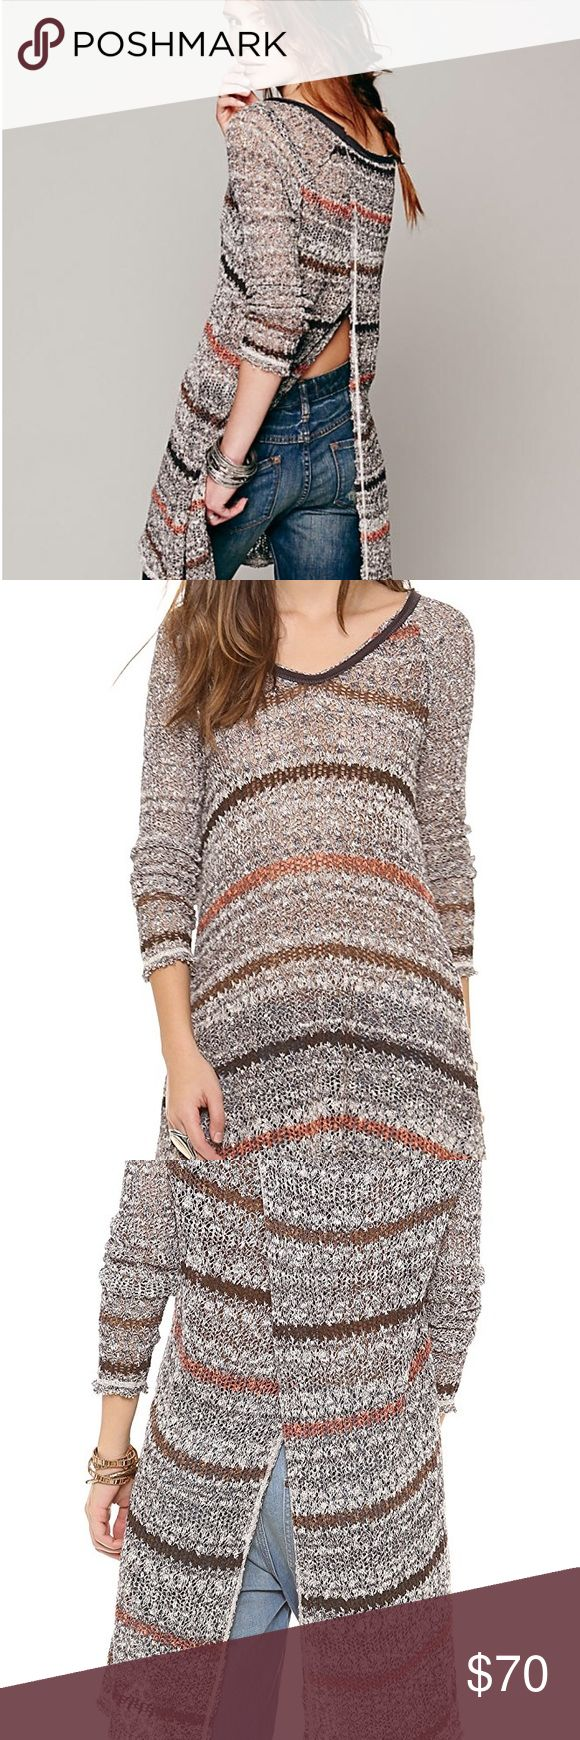 Free People Life's a Beach Tunic Amazing Life's a Beach tunic by Free People! Loose knit striped tunic with an A-line silhouette and long sleeves. Features a crossover style slit, which extends the entire length of the garment, on the back. The perfect, unique piece to add to your wardrobe for this fall! Distressed hem and sleeves detail. Great condition! Make an offer or 'add to bundle' and I will send you a personal discount! ❤️ Free People Tops